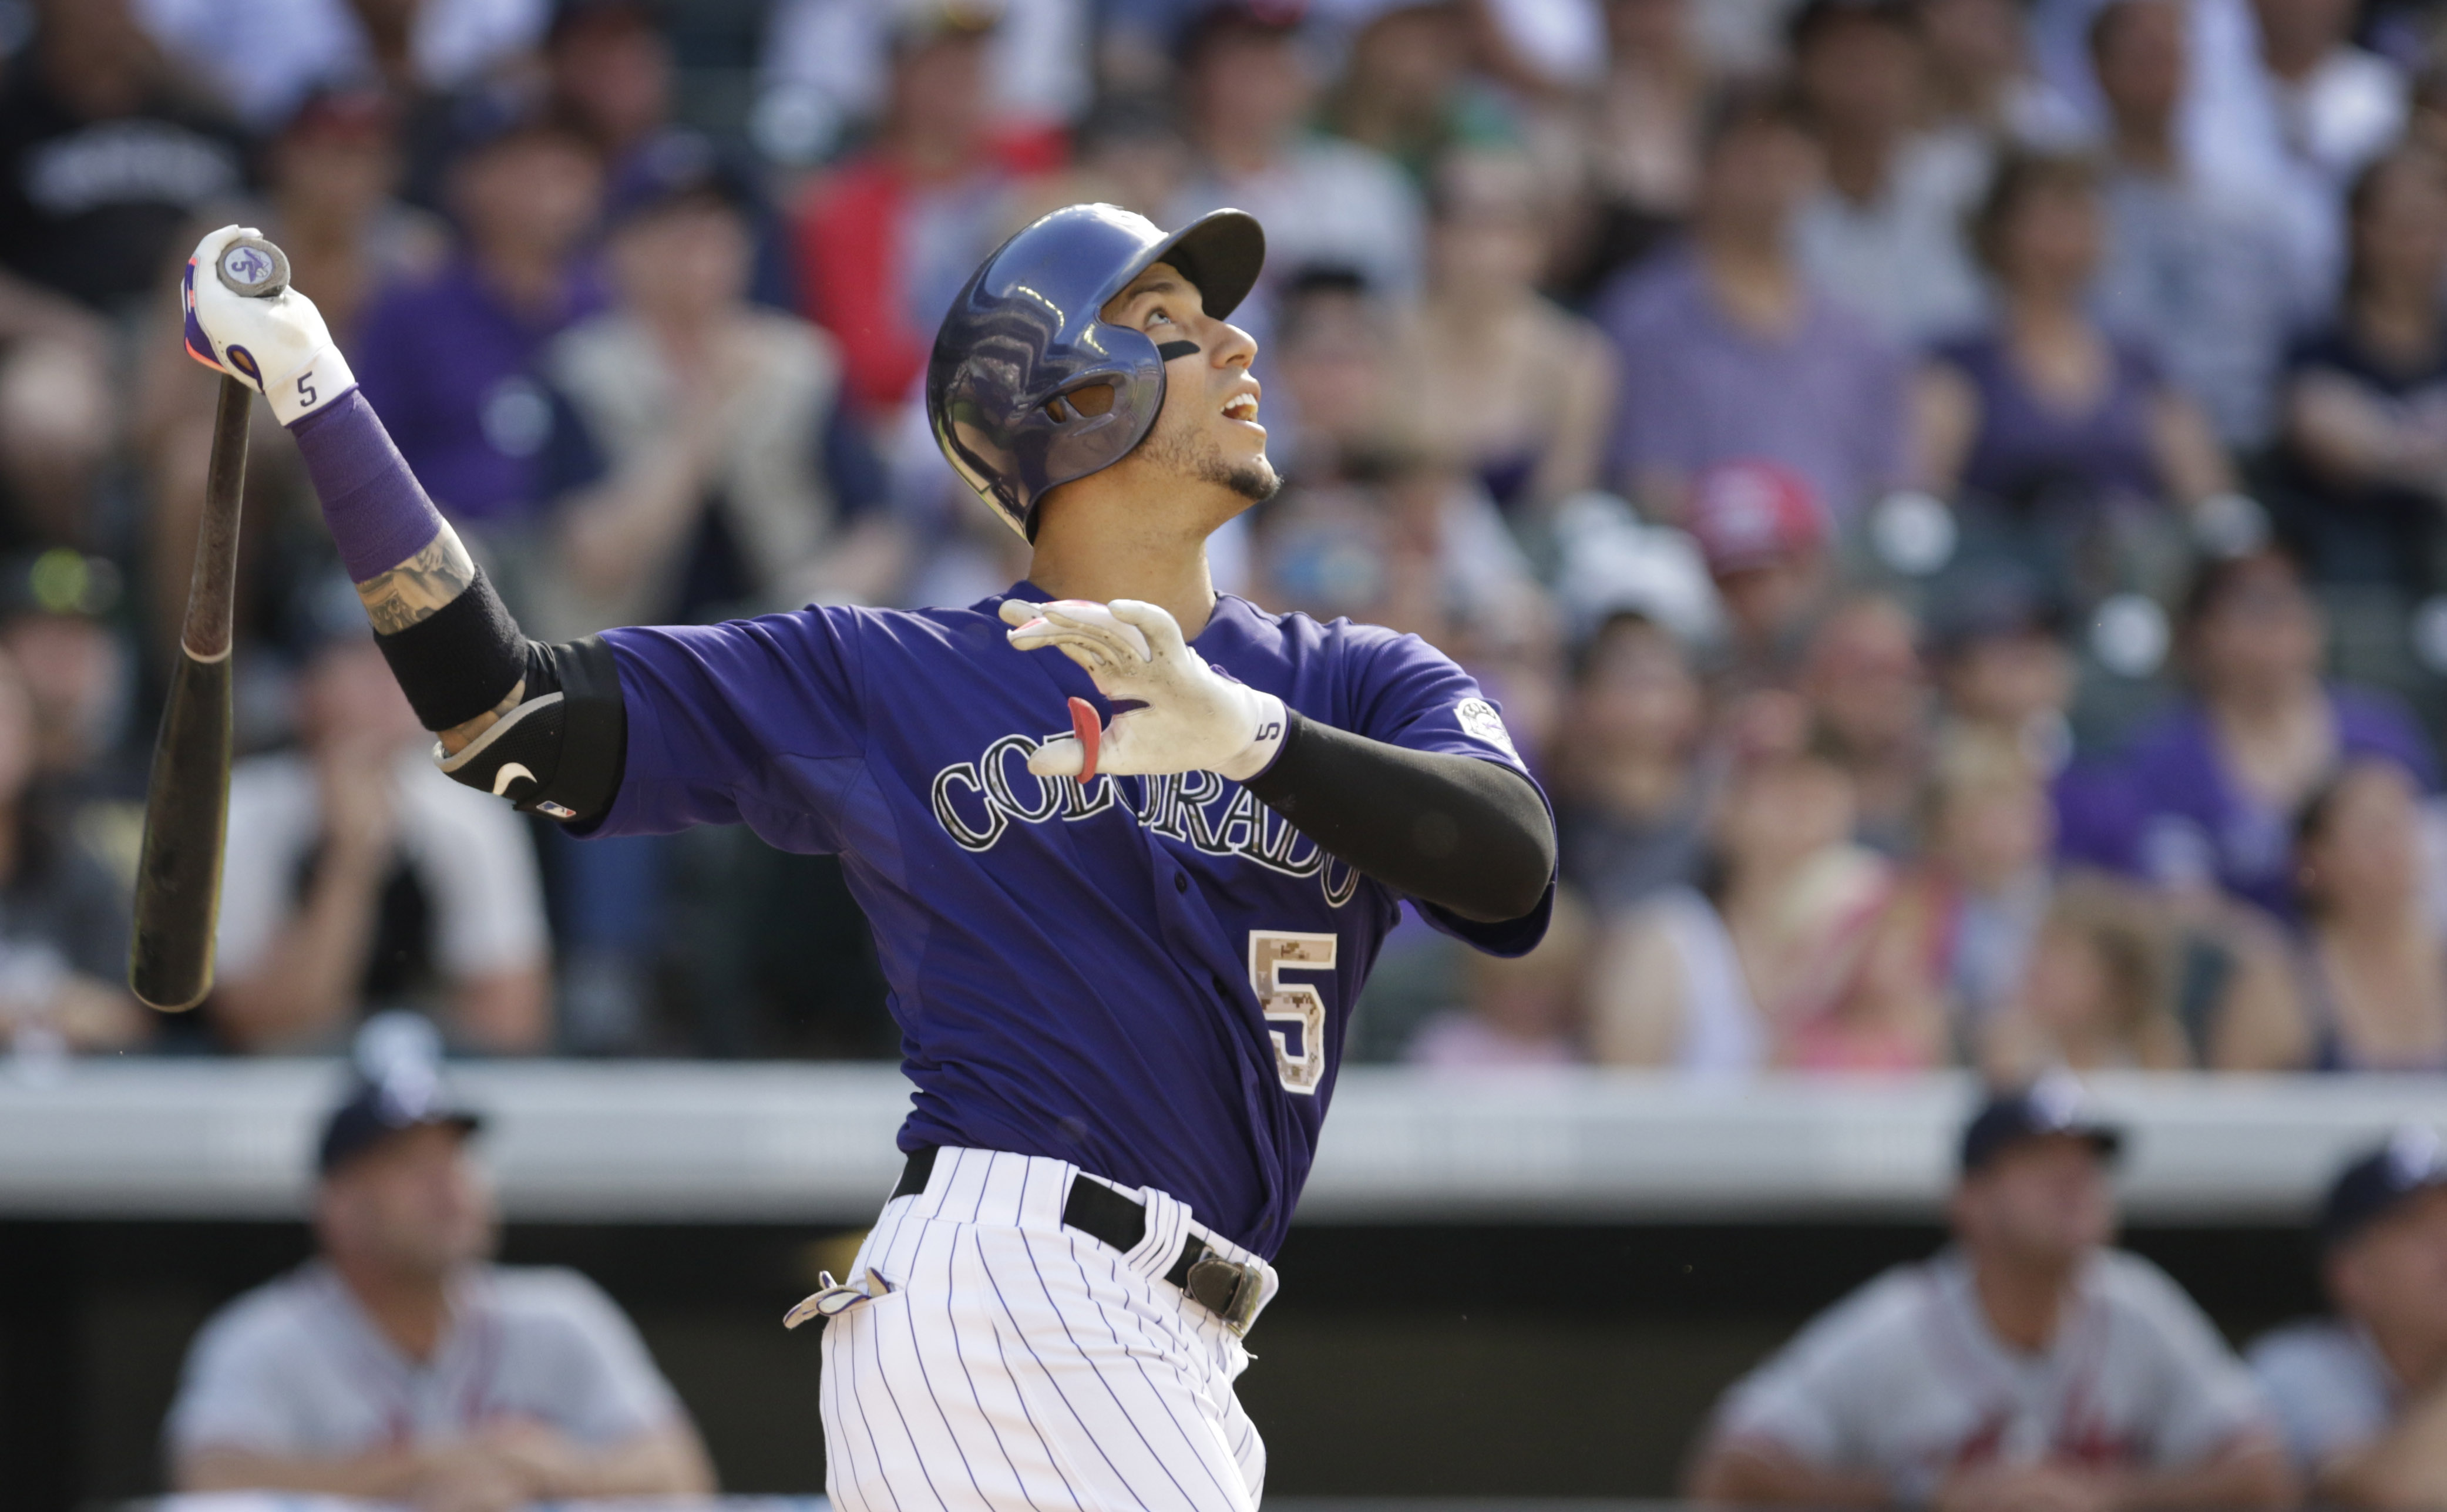 Colorado Rockies' Carlos Gonzalez watches his game-winning RBI-single against the Atlanta Braves for a 3-2 victory in the ninth inning of a baseball game in Denver, Saturday, July 11, 2015. (AP Photo/Joe Mahoney)